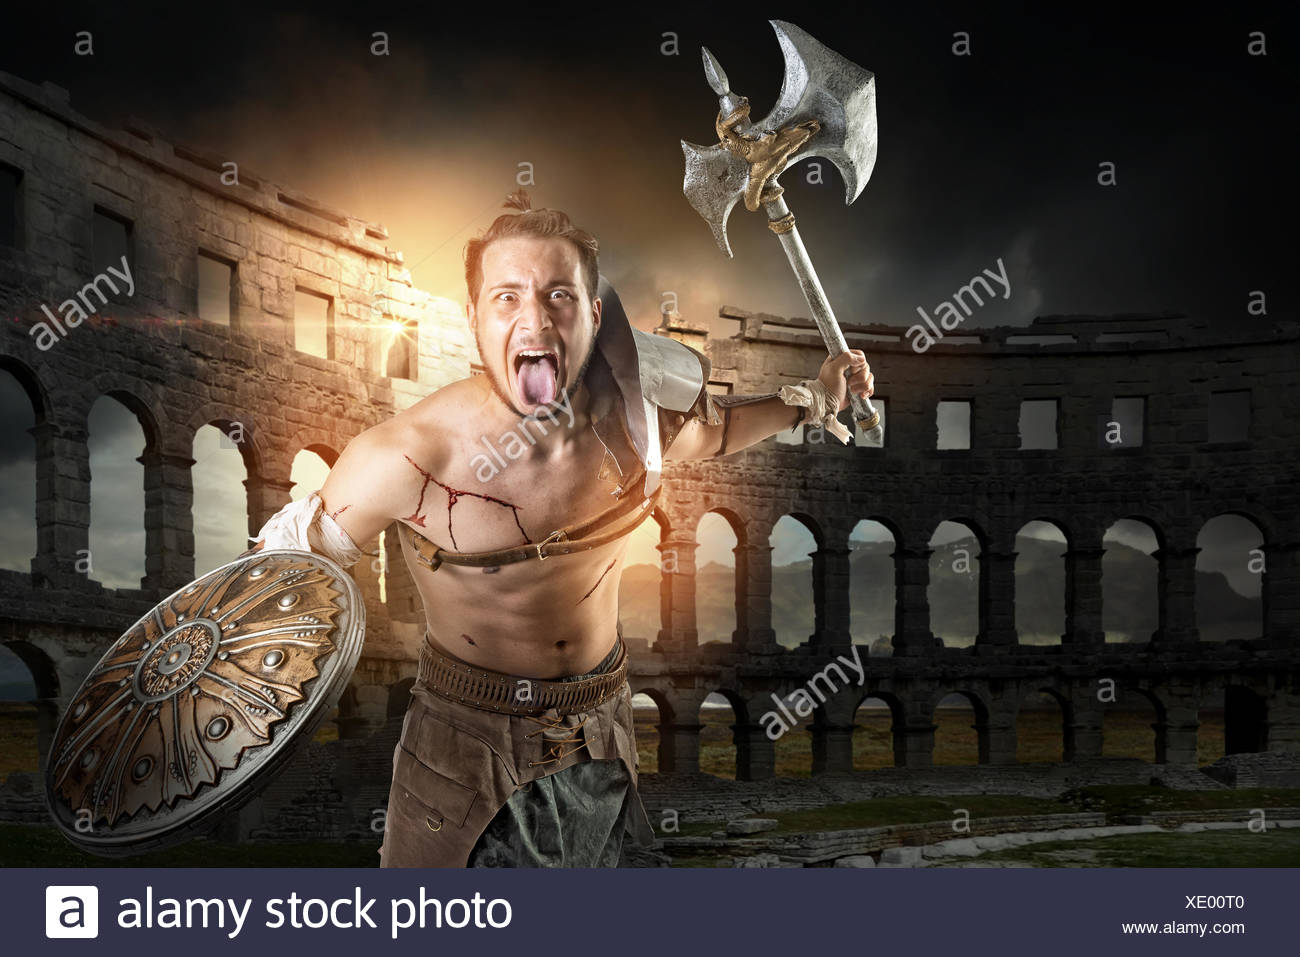 Gladiator Fight In Ancient Rome Stock Photos & Gladiator Fight In ...